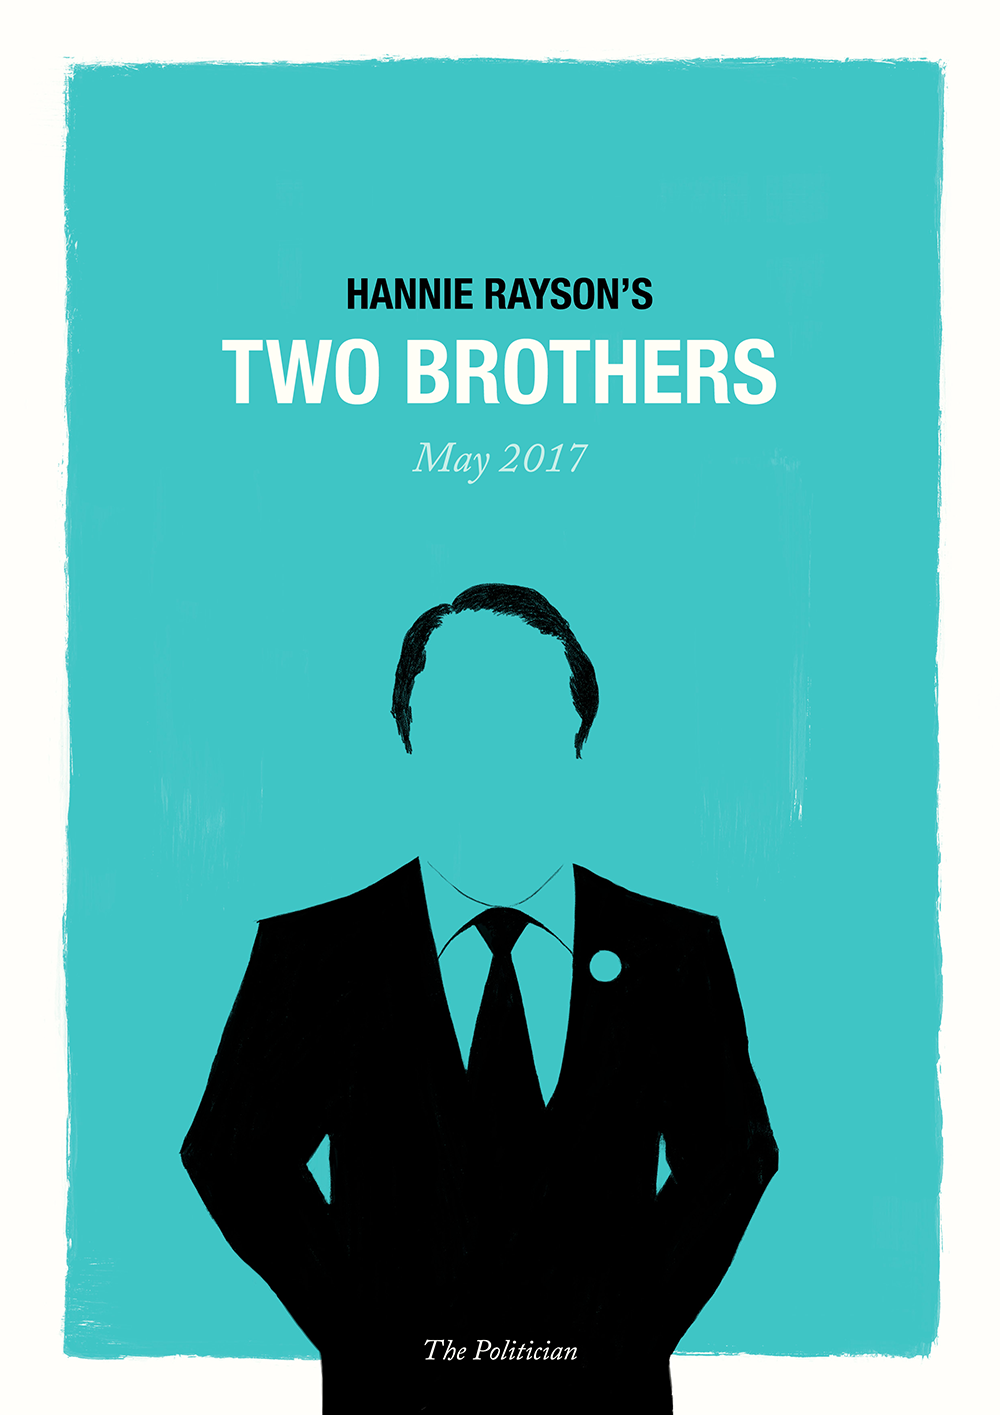 TwoBrothers